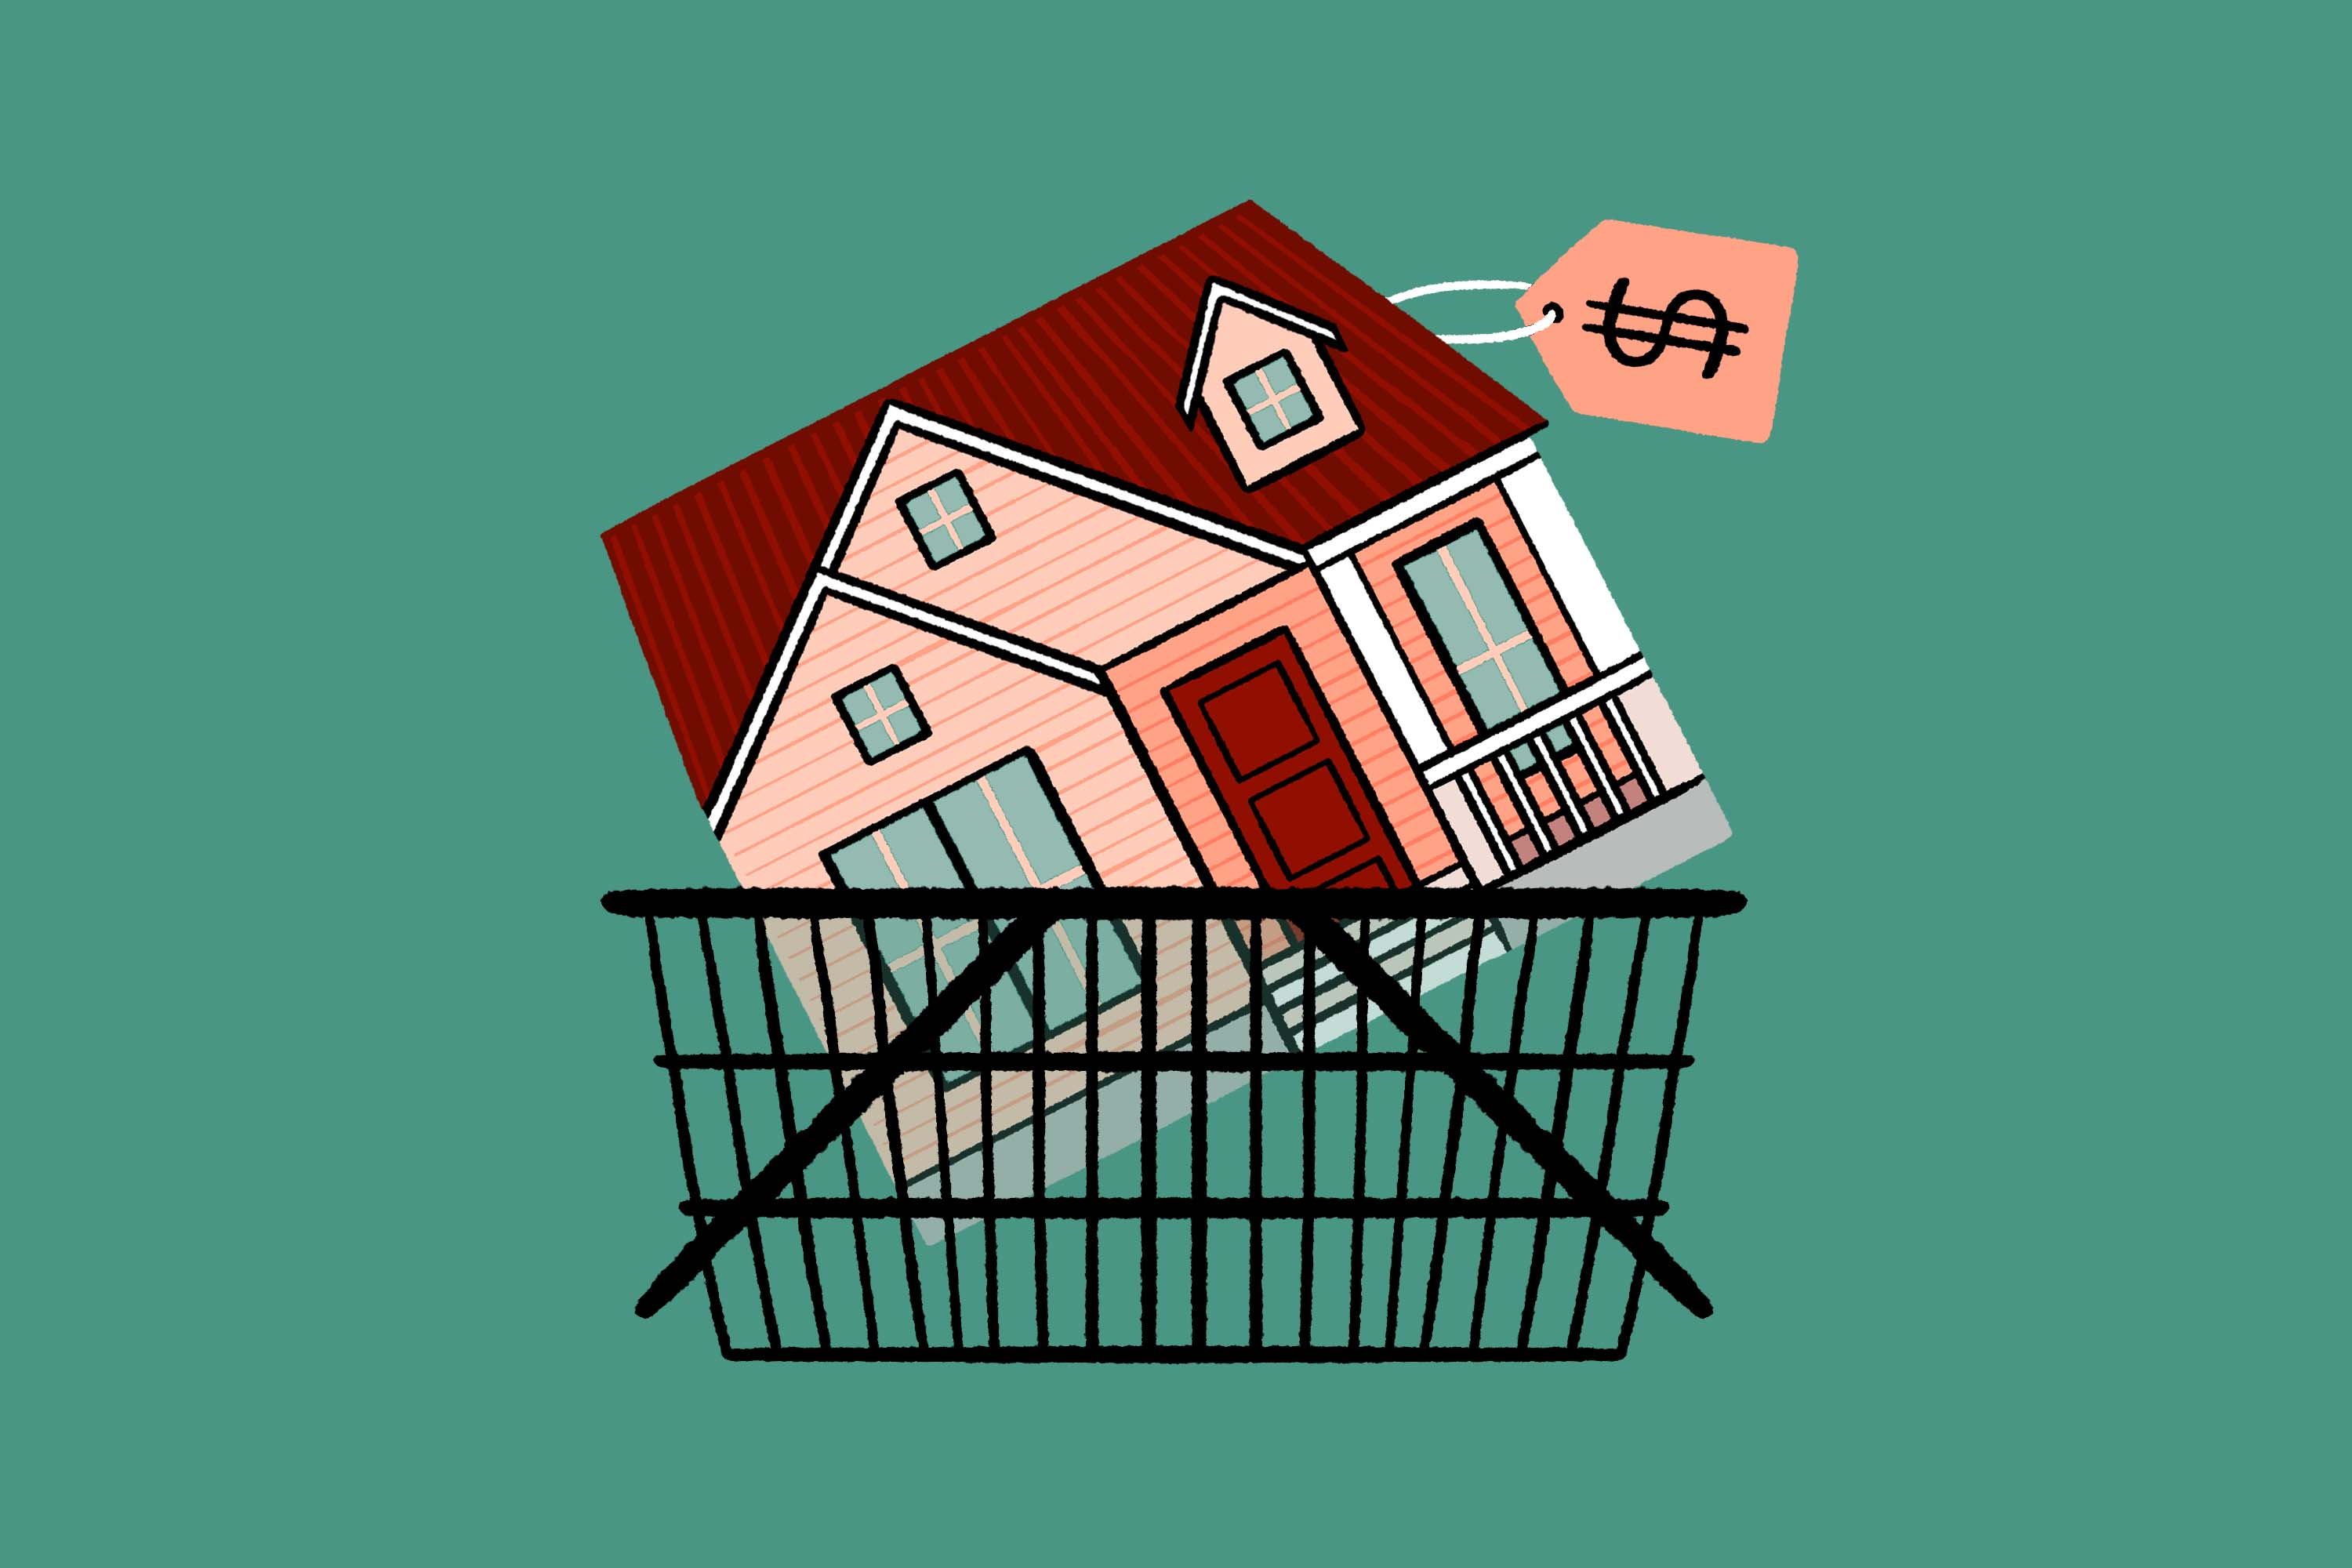 The 2010s changed how you shop for homes. Will the 2020s change the way you buy them?